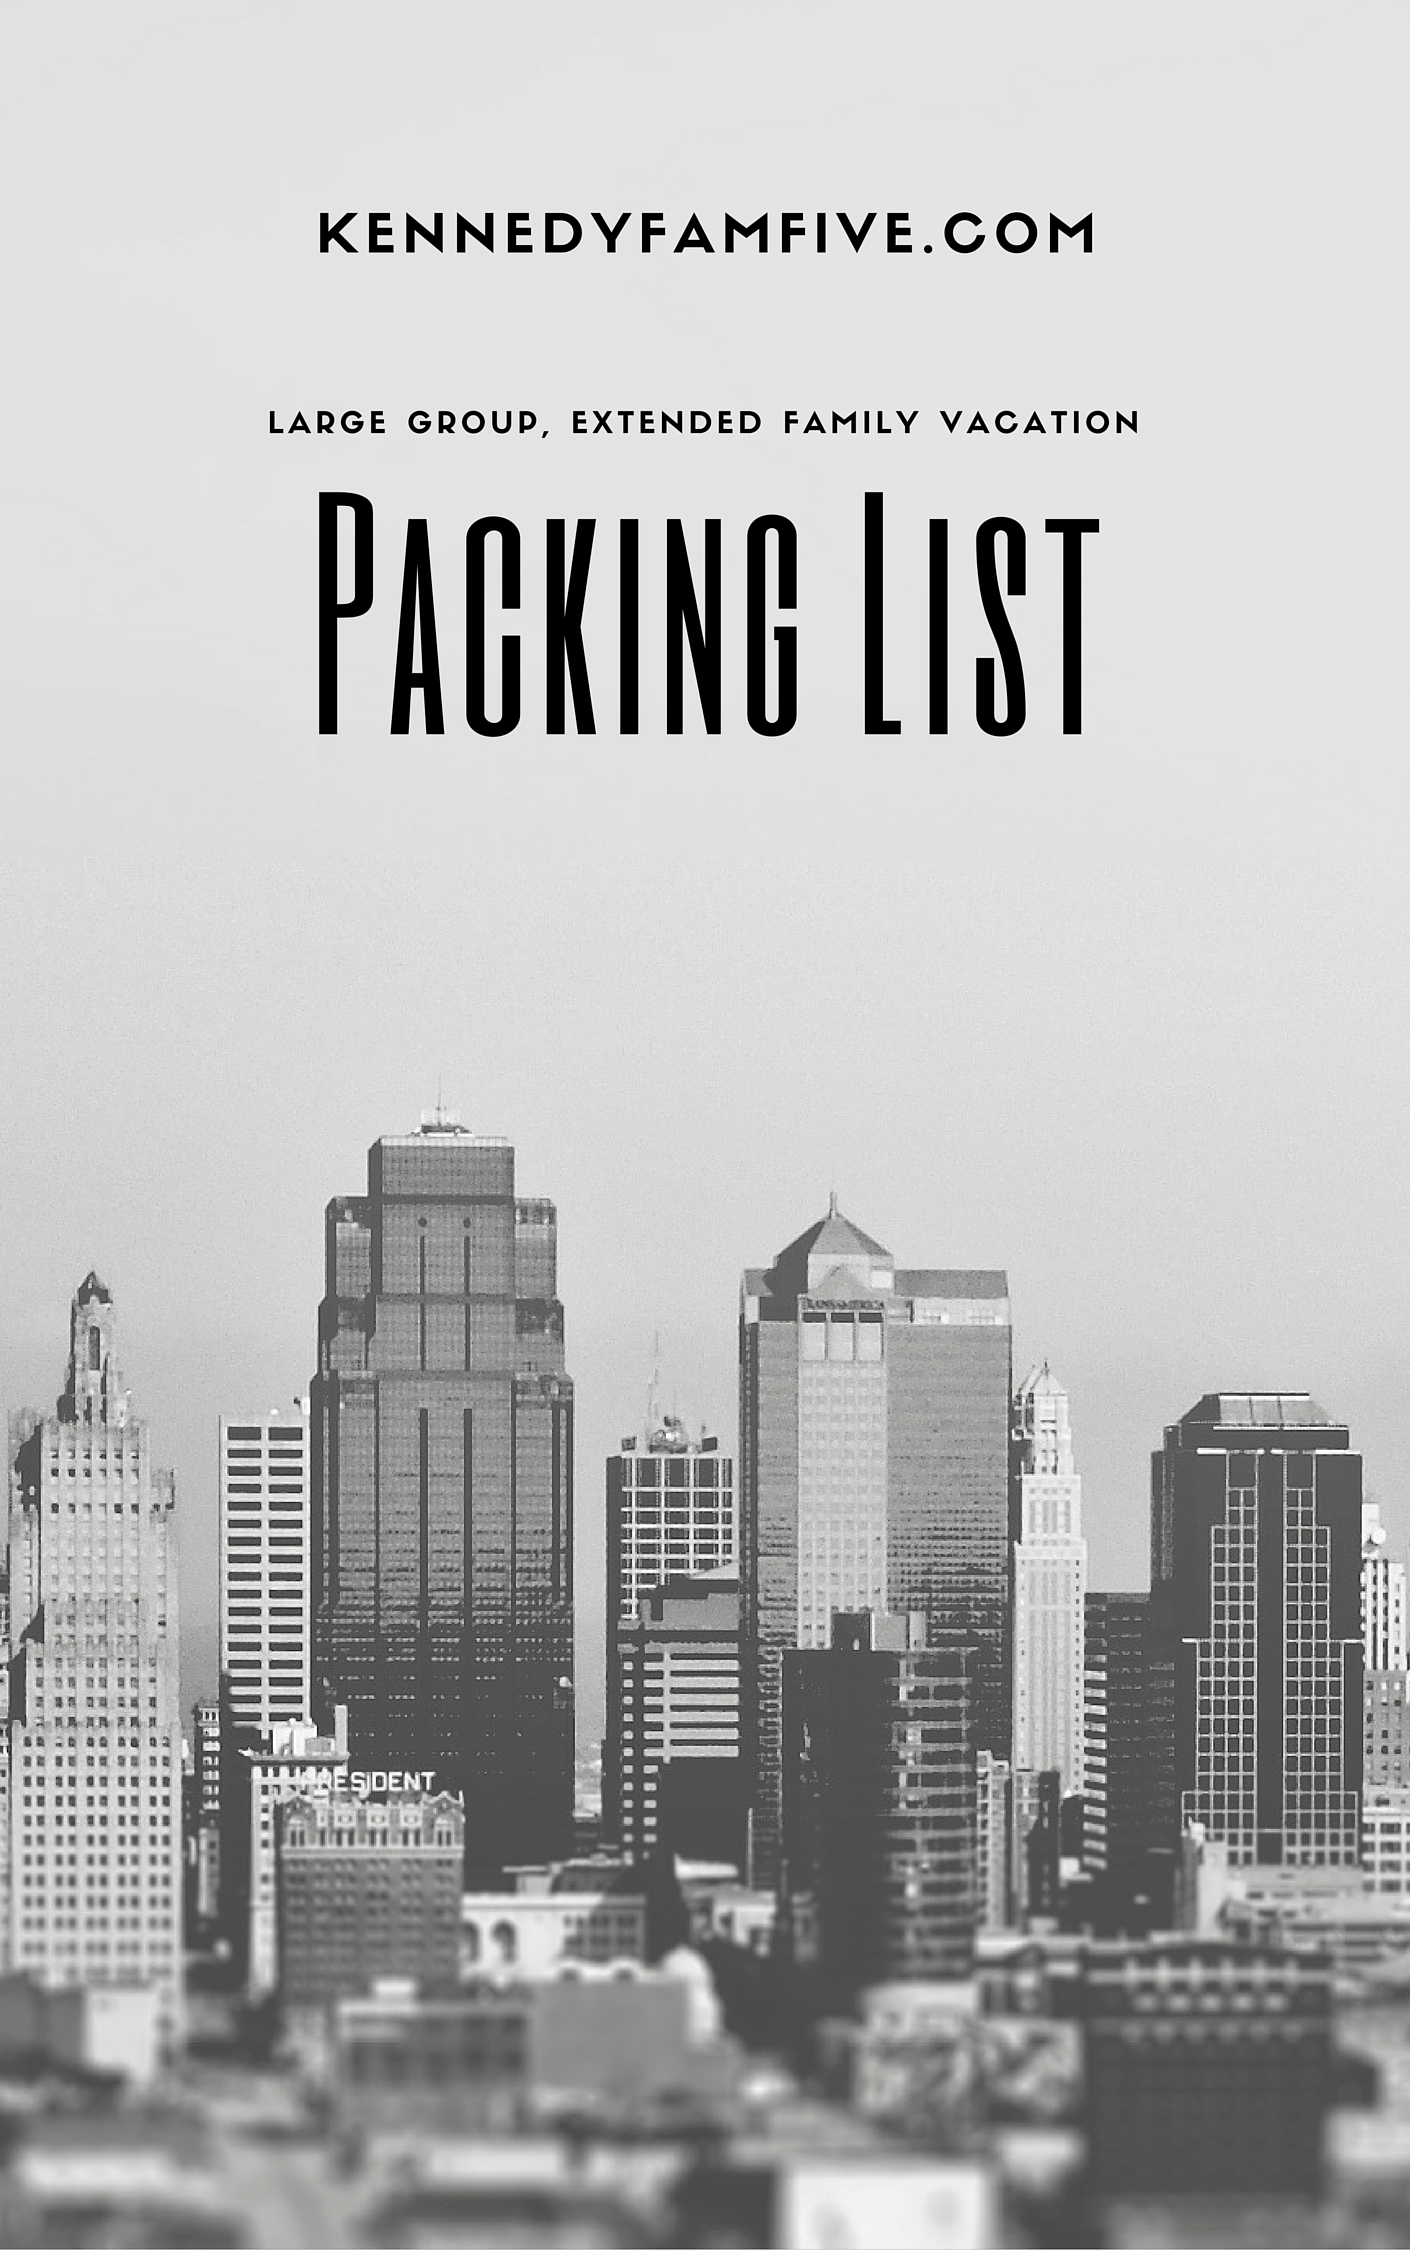 packing list for large groups. printable packing list for family vacataion.